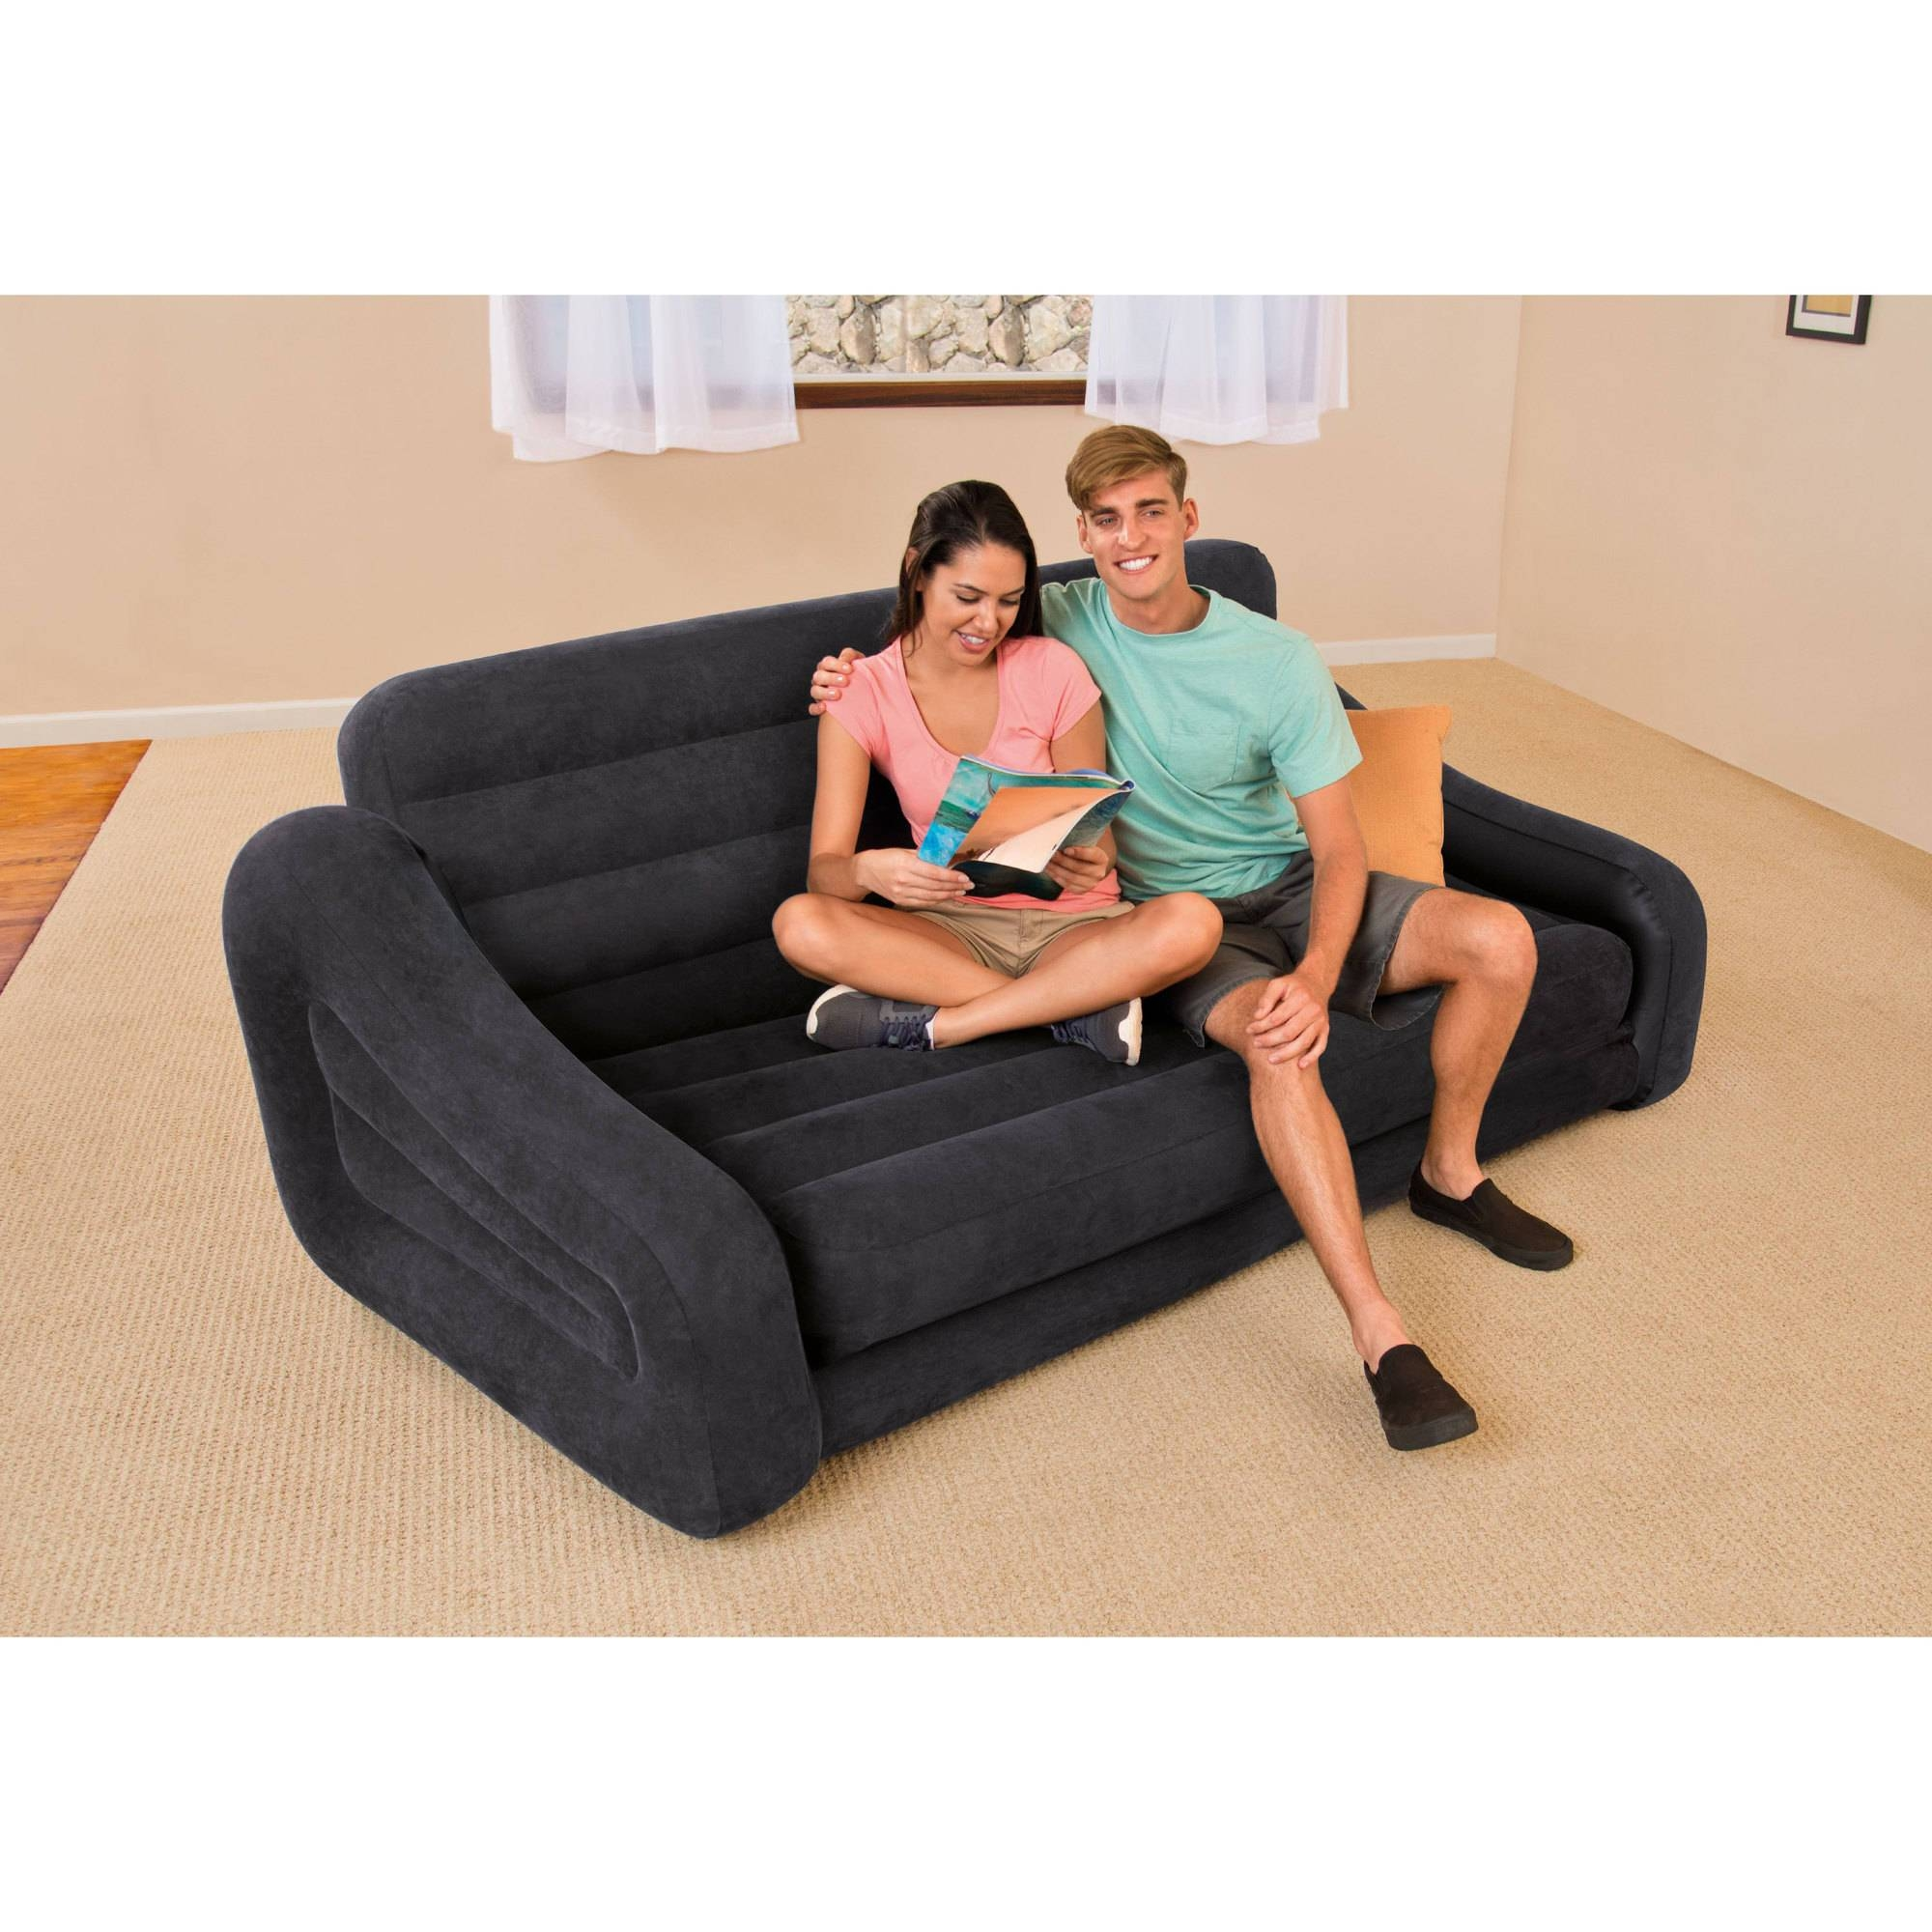 Intex Queen Inflatable Pull Out Sofa Bed - Walmart regarding Pull Out Sofa Chairs (Image 13 of 30)